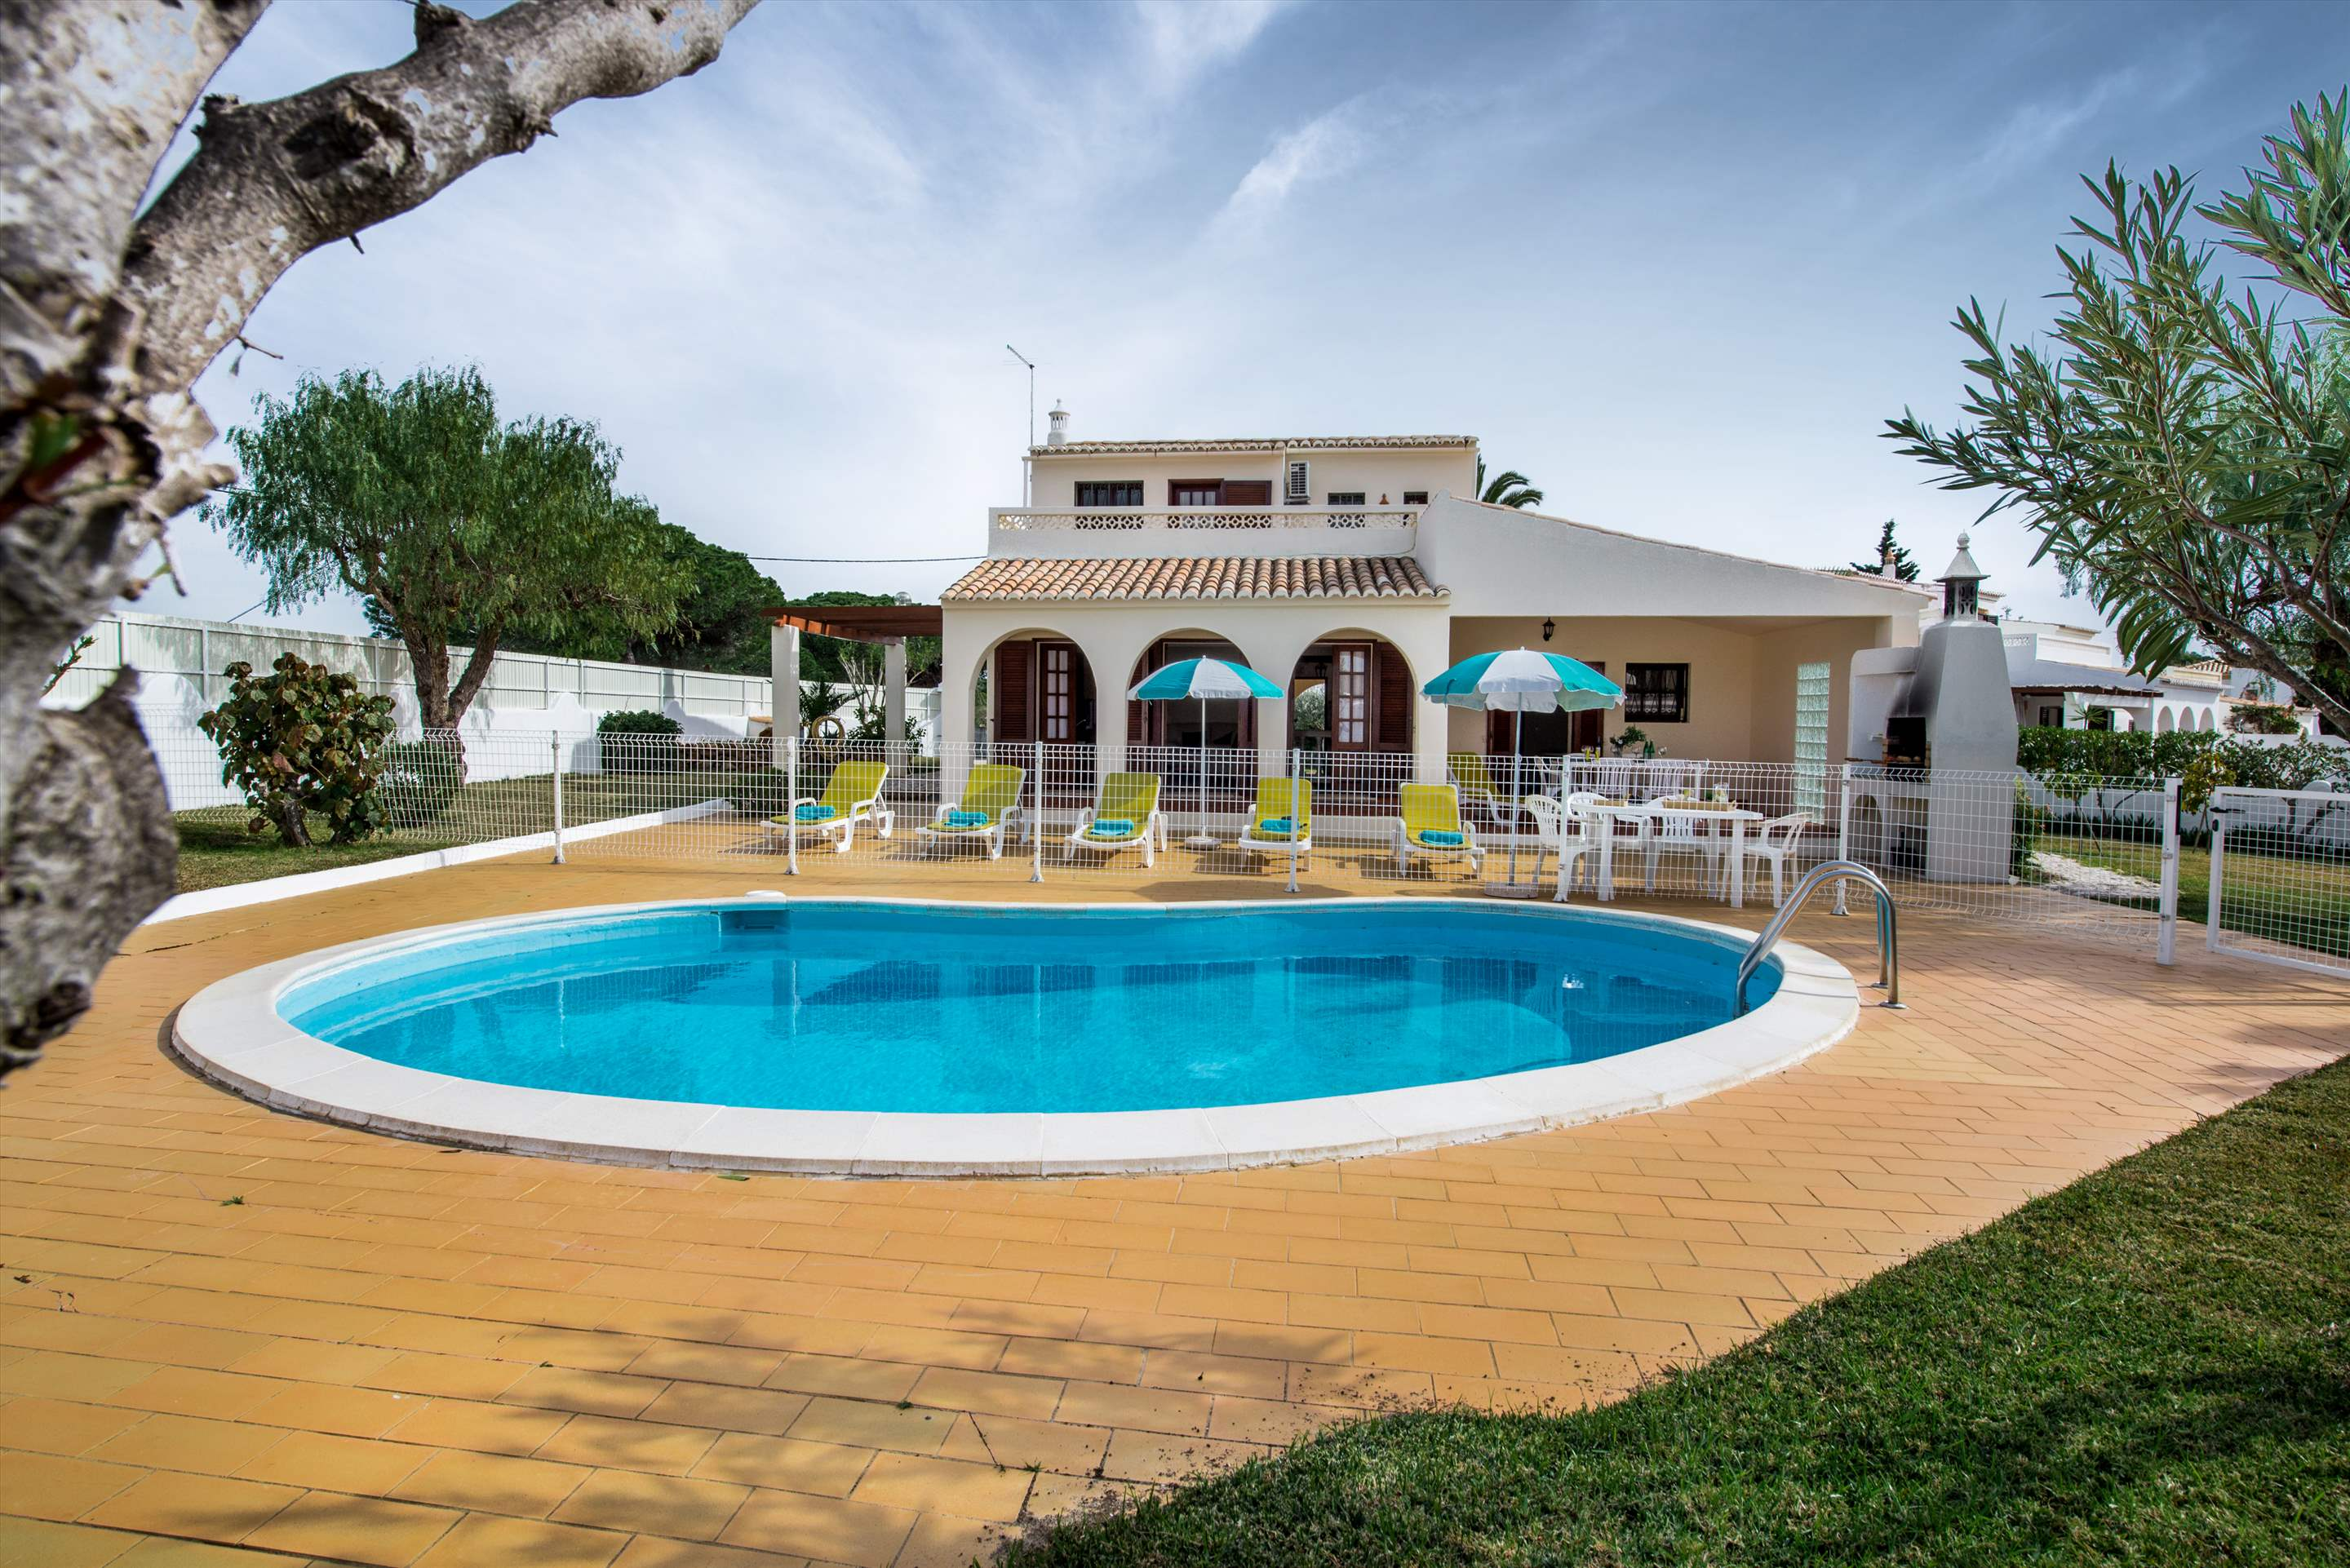 Casa Isabel, 5-6 persons rate, 3 bedroom villa in Gale, Vale da Parra and Guia, Algarve Photo #11